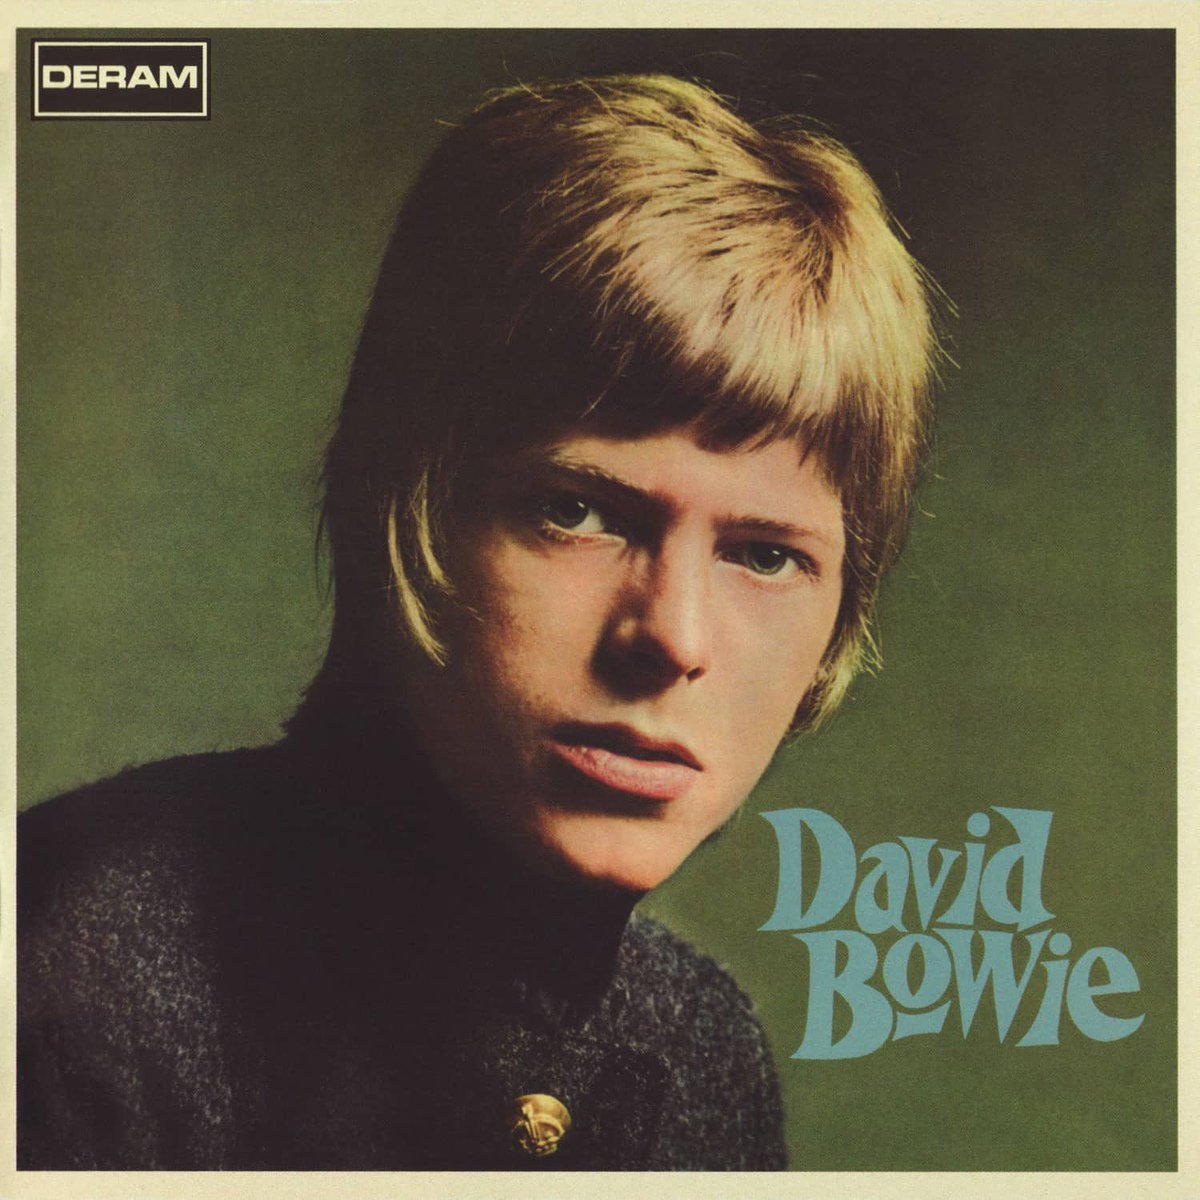 David Bowie released his self-titled debut album on this day in 1967.